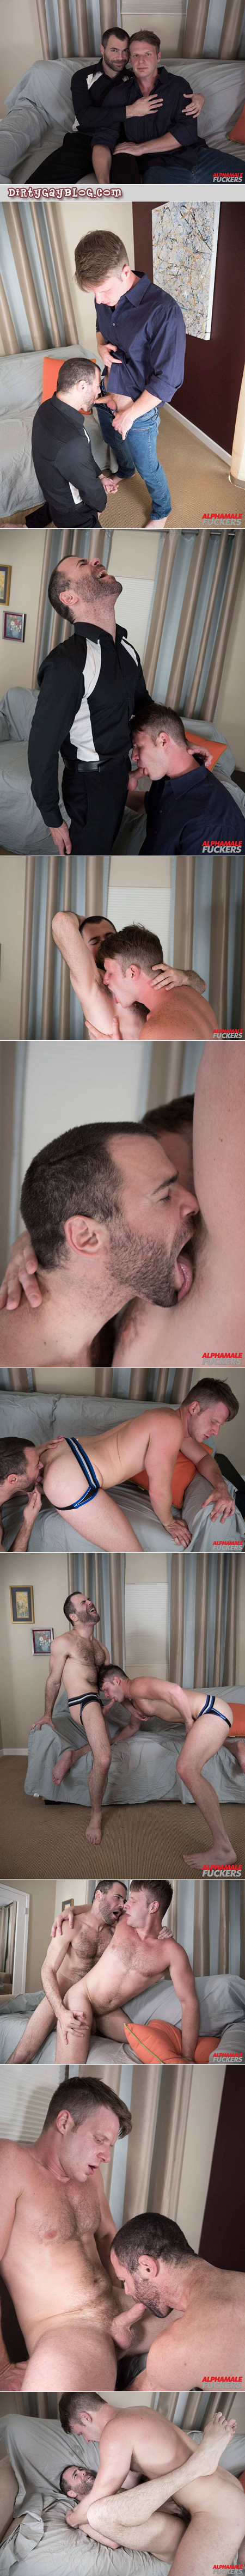 Hairy gay men flip-fucking bareback.